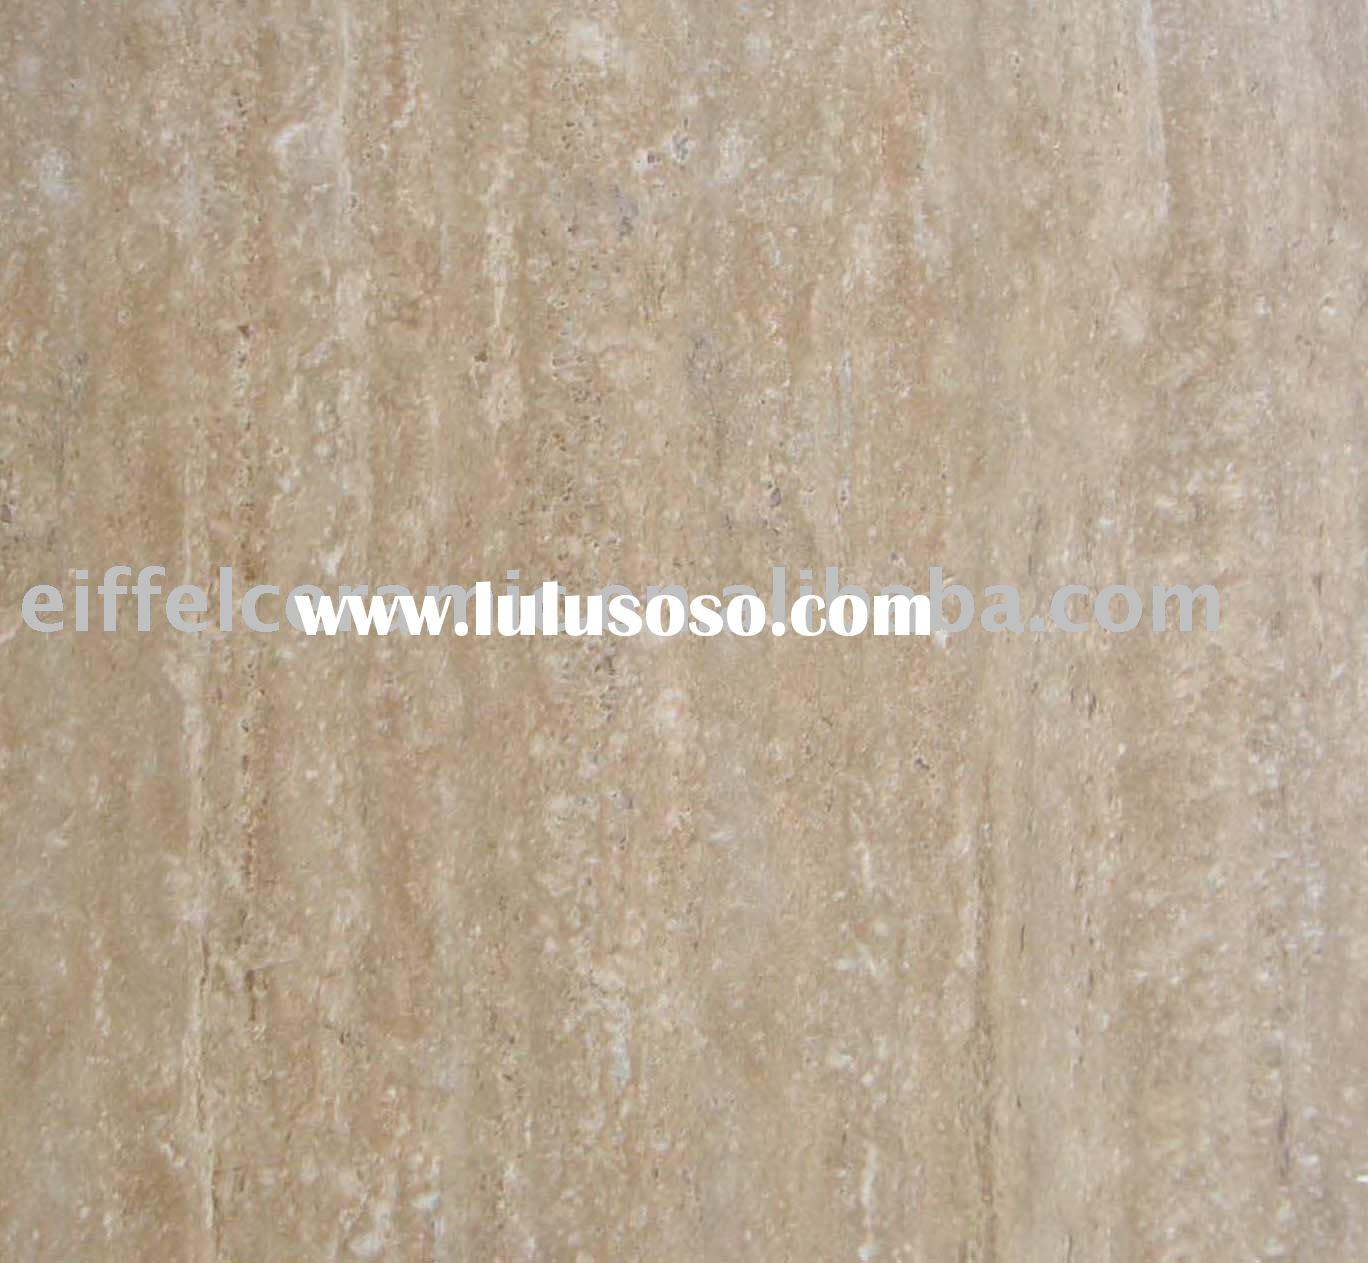 Glazed Porcelain tile,porcelain tile,floor tile,ceramic tile,antique floor tile,china tile,building